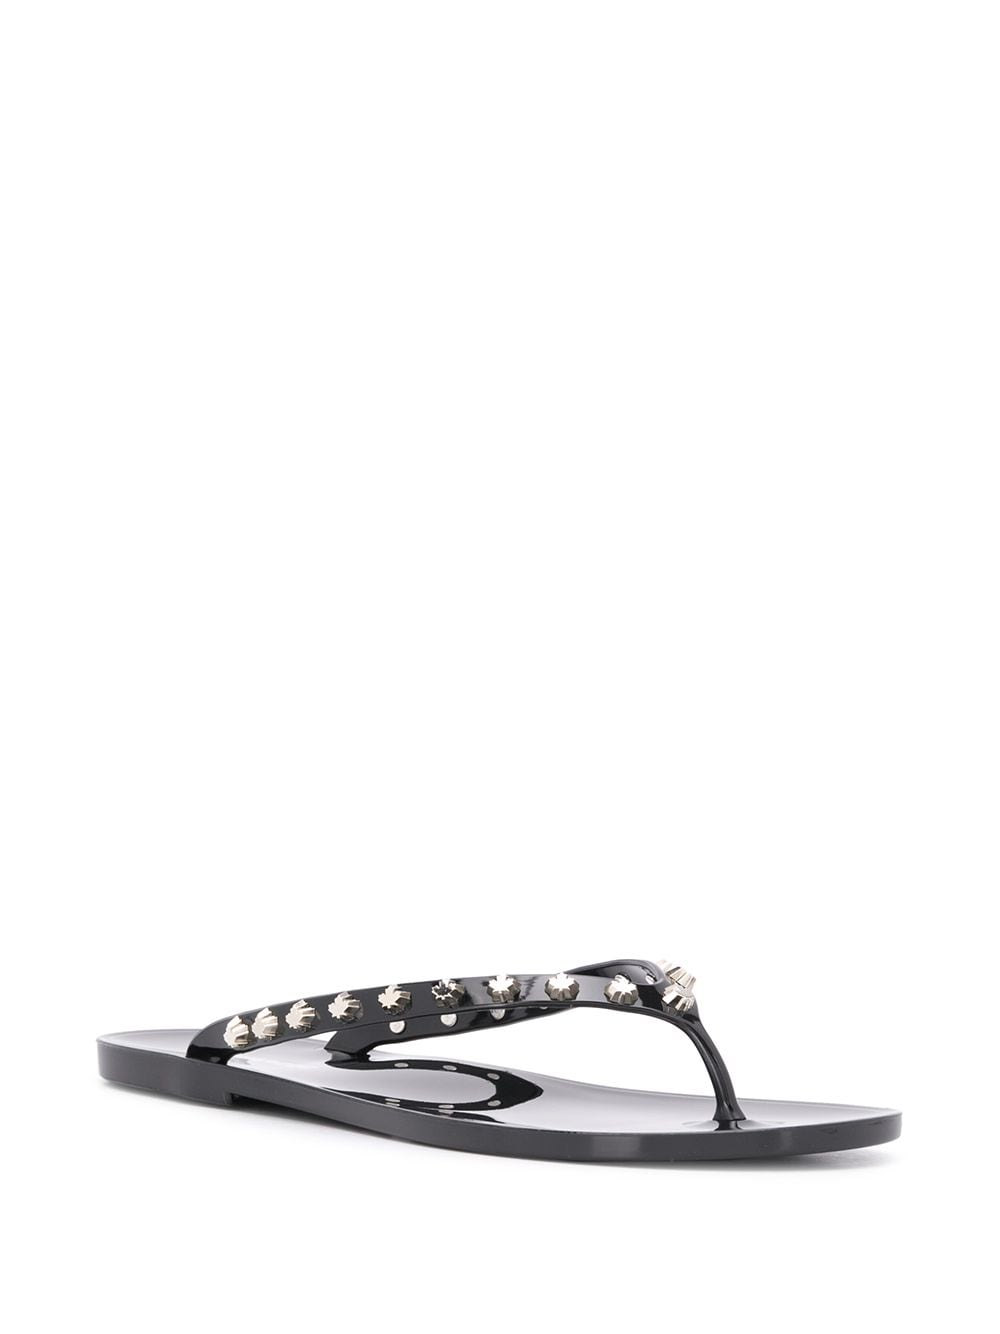 DSQUARED2 women studded sandals